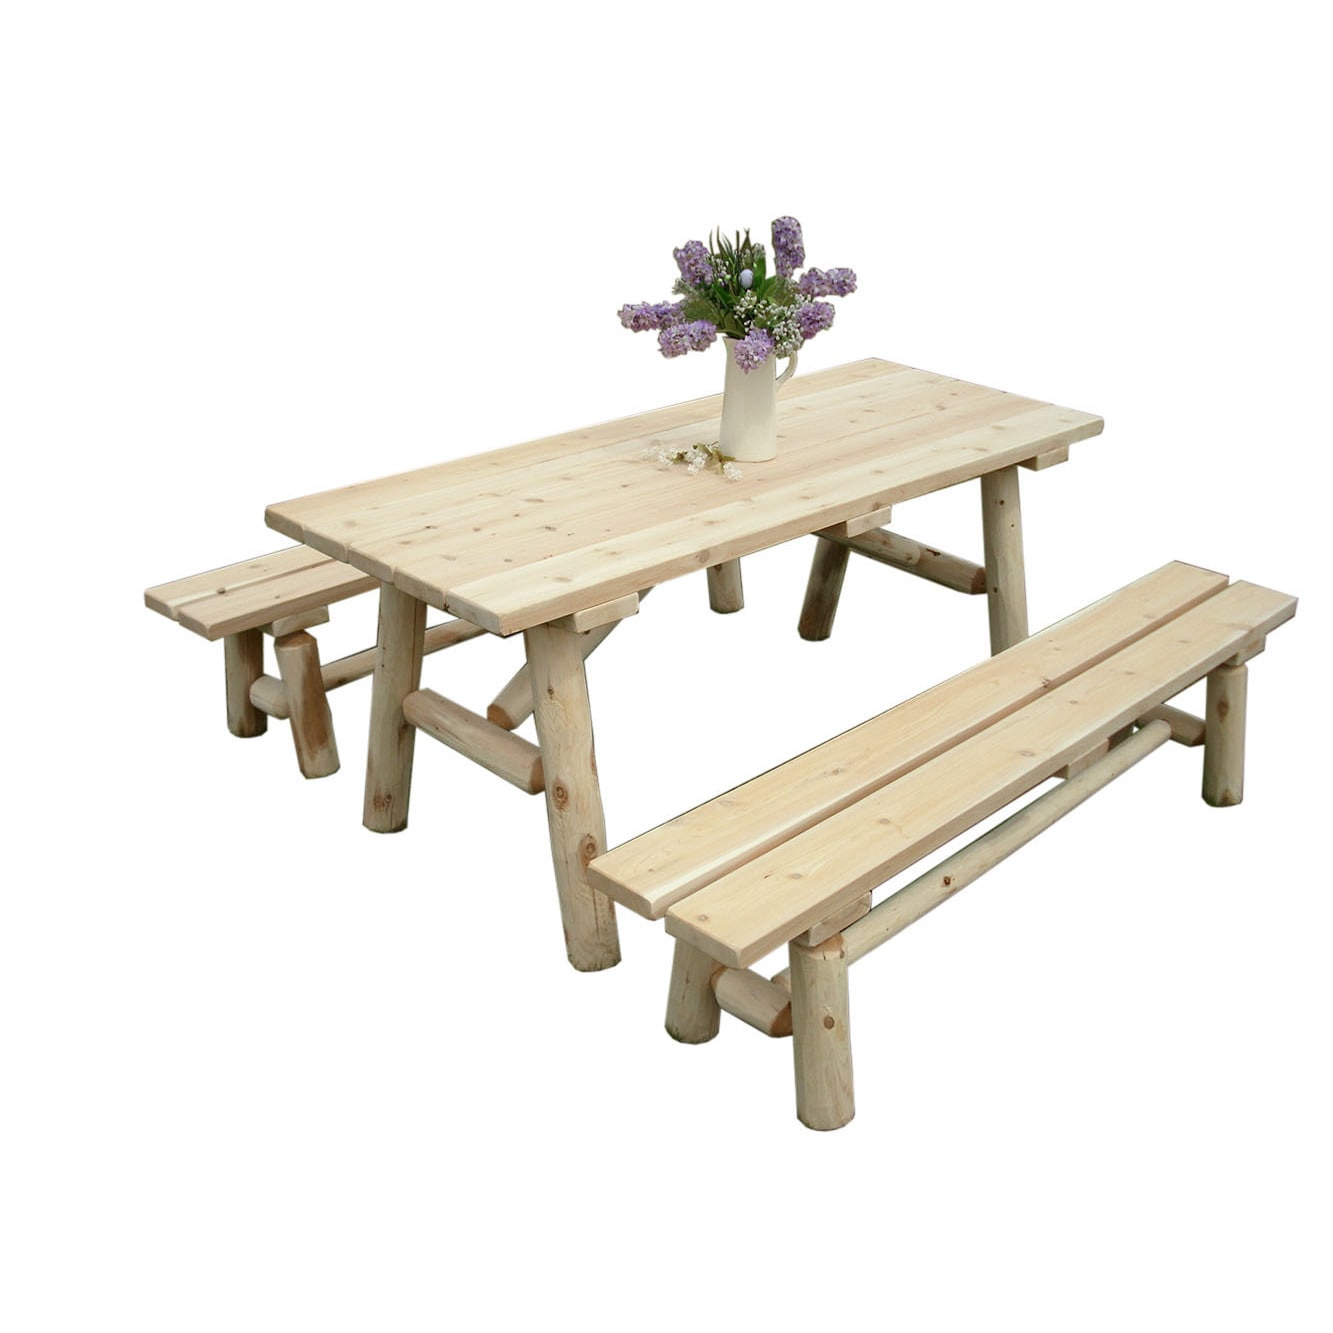 Shop White Cedar Log 8 Foot Traditional Picnic Table With Detached Benches    Free Shipping Today   Overstock.com   13261311